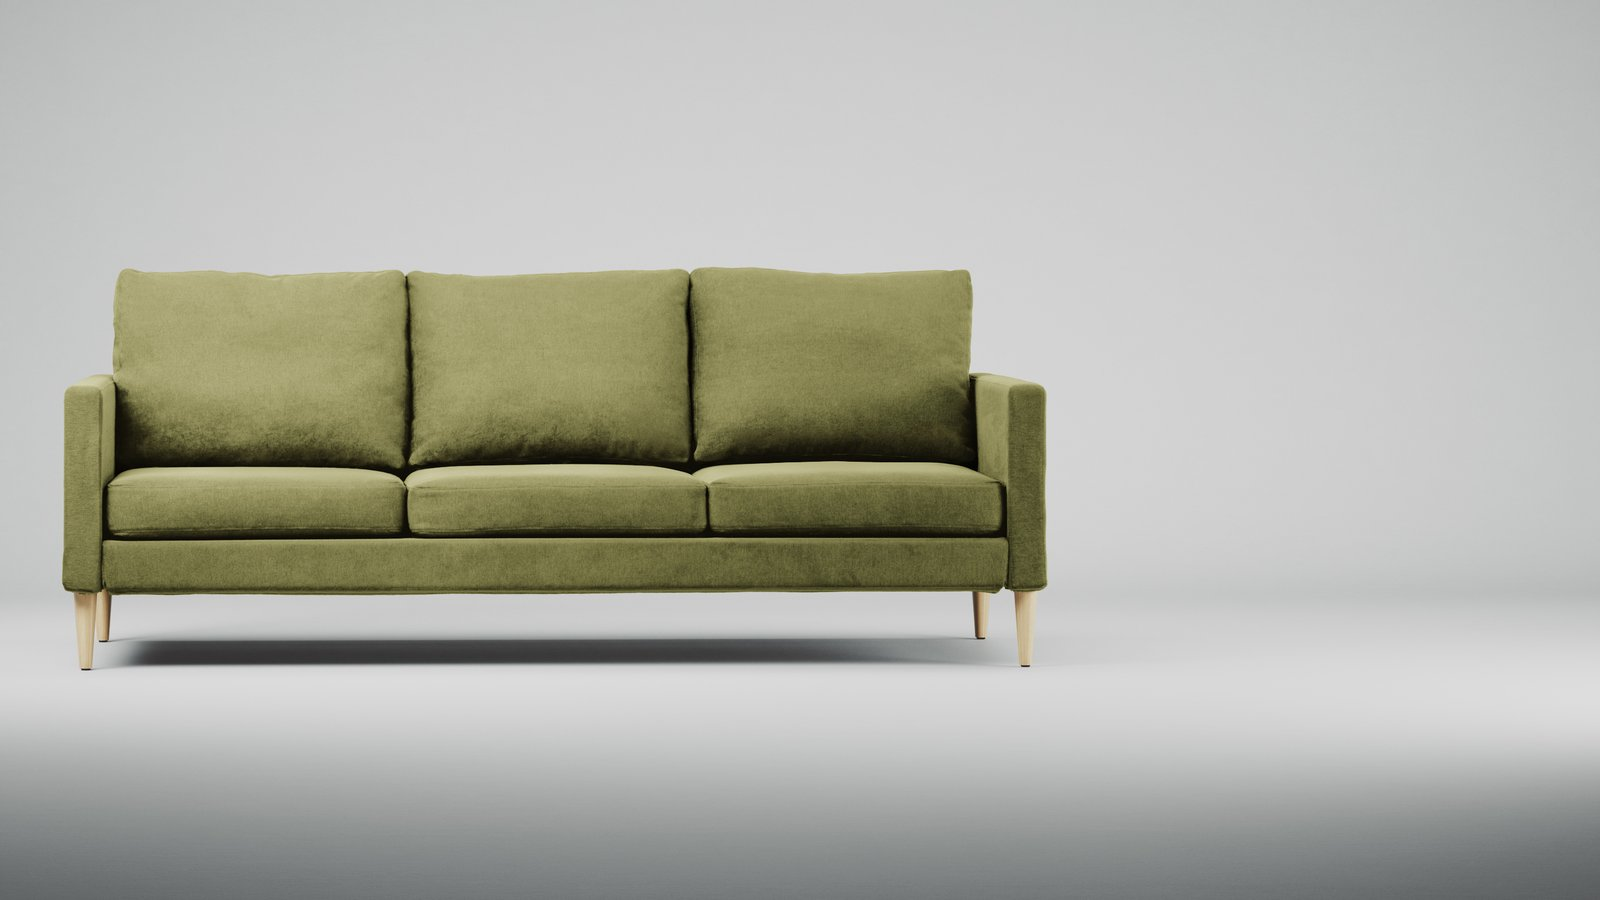 Campaign has a high quality flat pack sofa, loveseat, and chair.